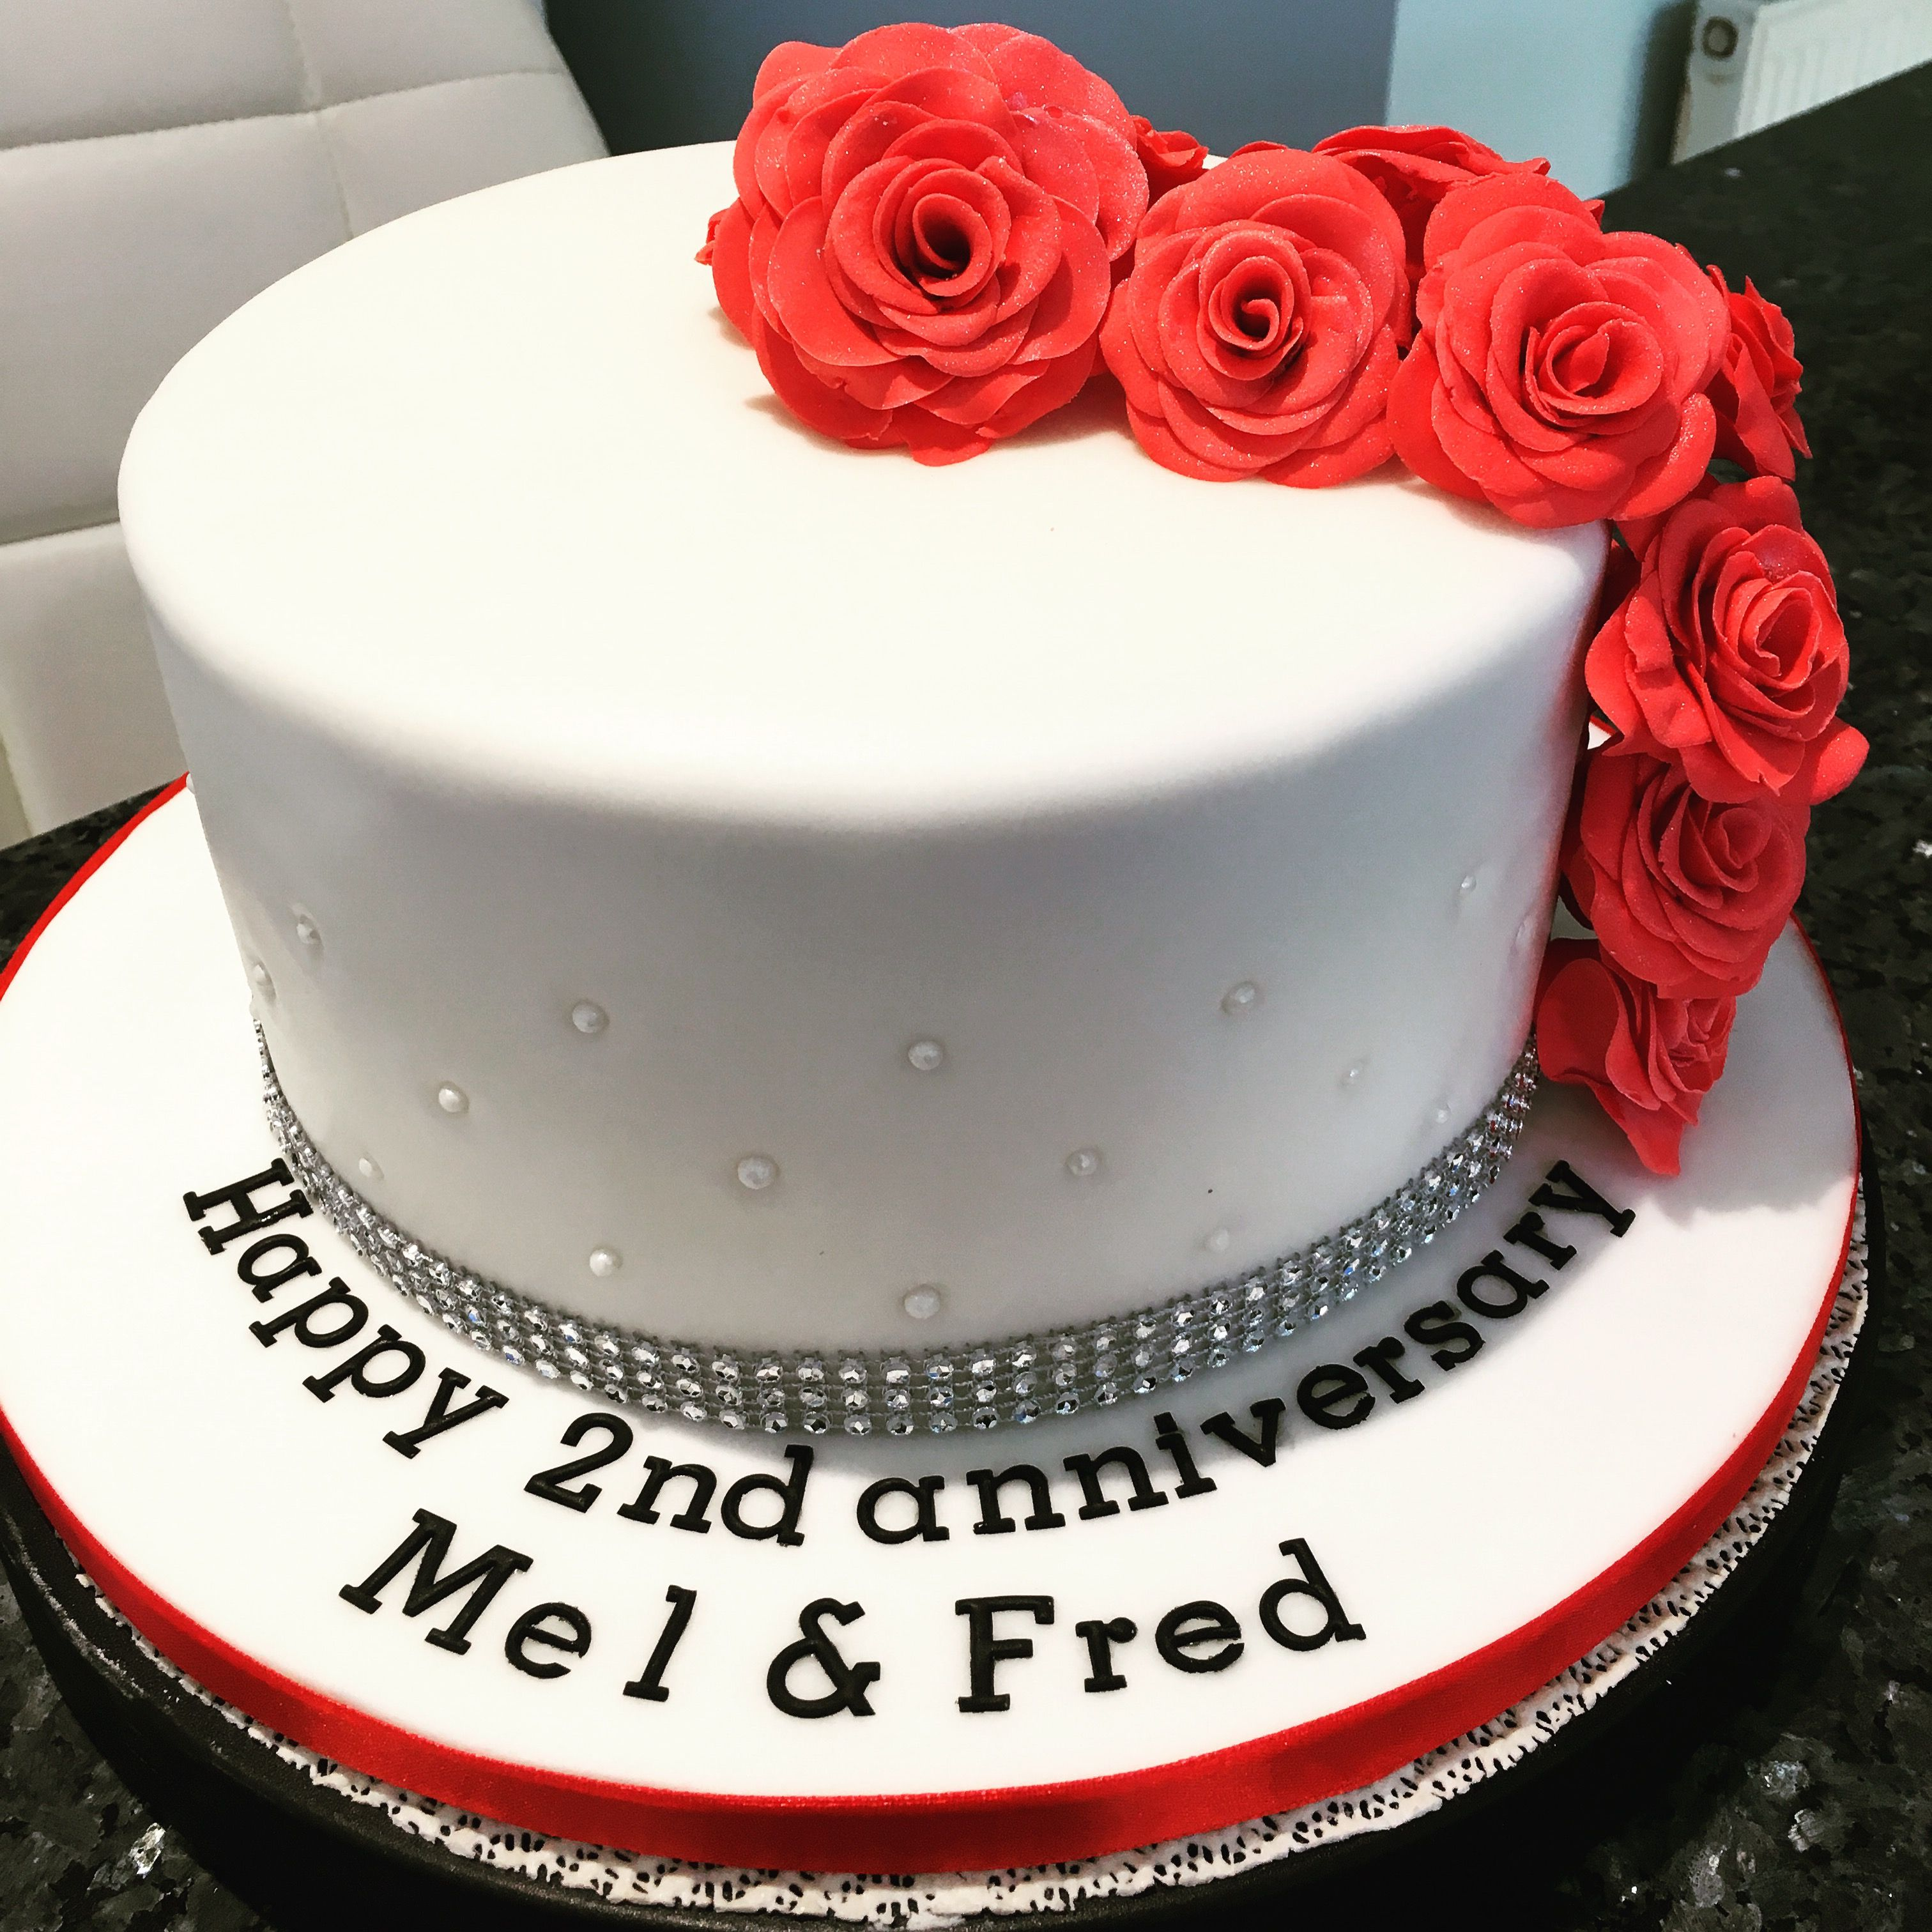 Anniversary Cake With Red Roses For 2nd Anniversary My Homemade